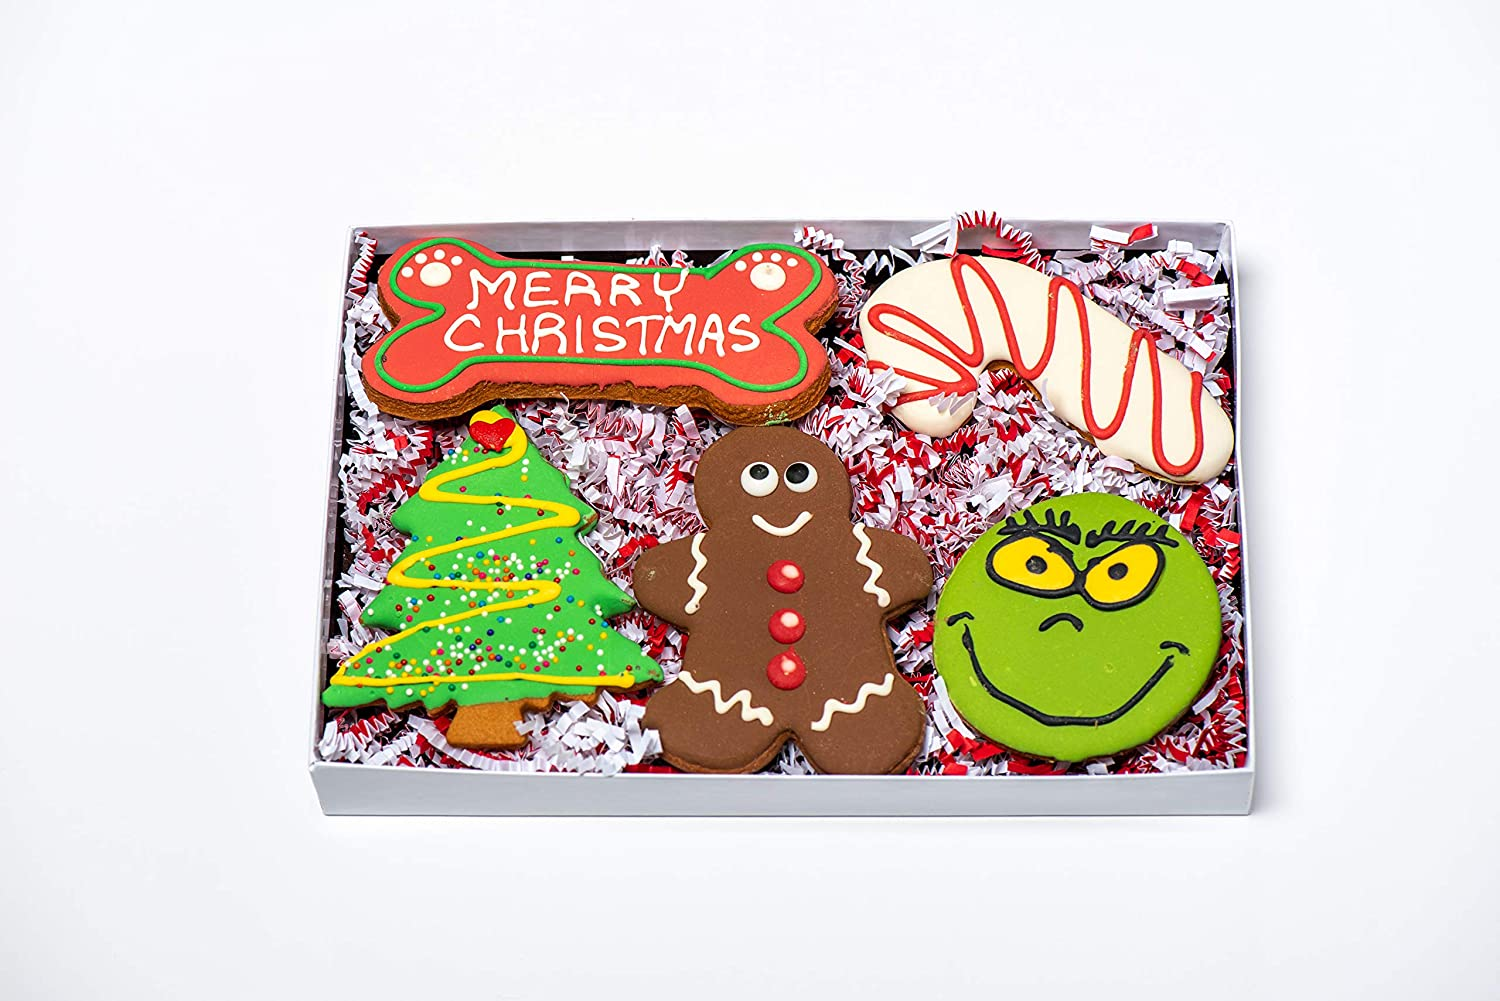 New popularity BoxDog Handmade Chicago Mall Christmas Cookie for Dogs Gift